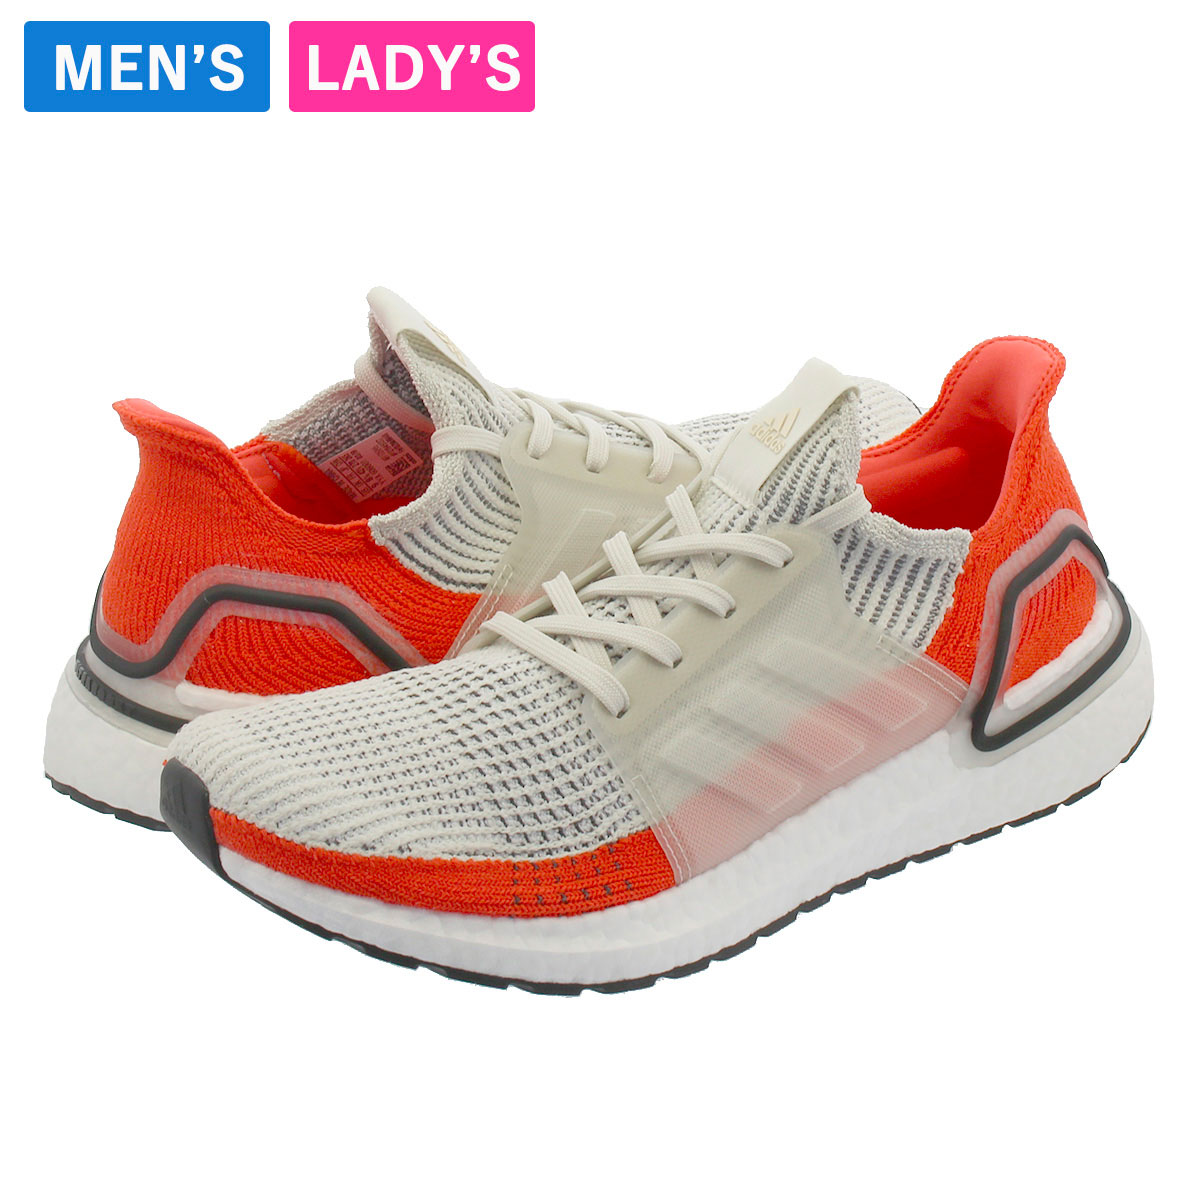 adidas ULTRA BOOST 19 Adidas ultra boost 19 LOW WHITERUNNING WHITEACTIVE ORANGE f35245